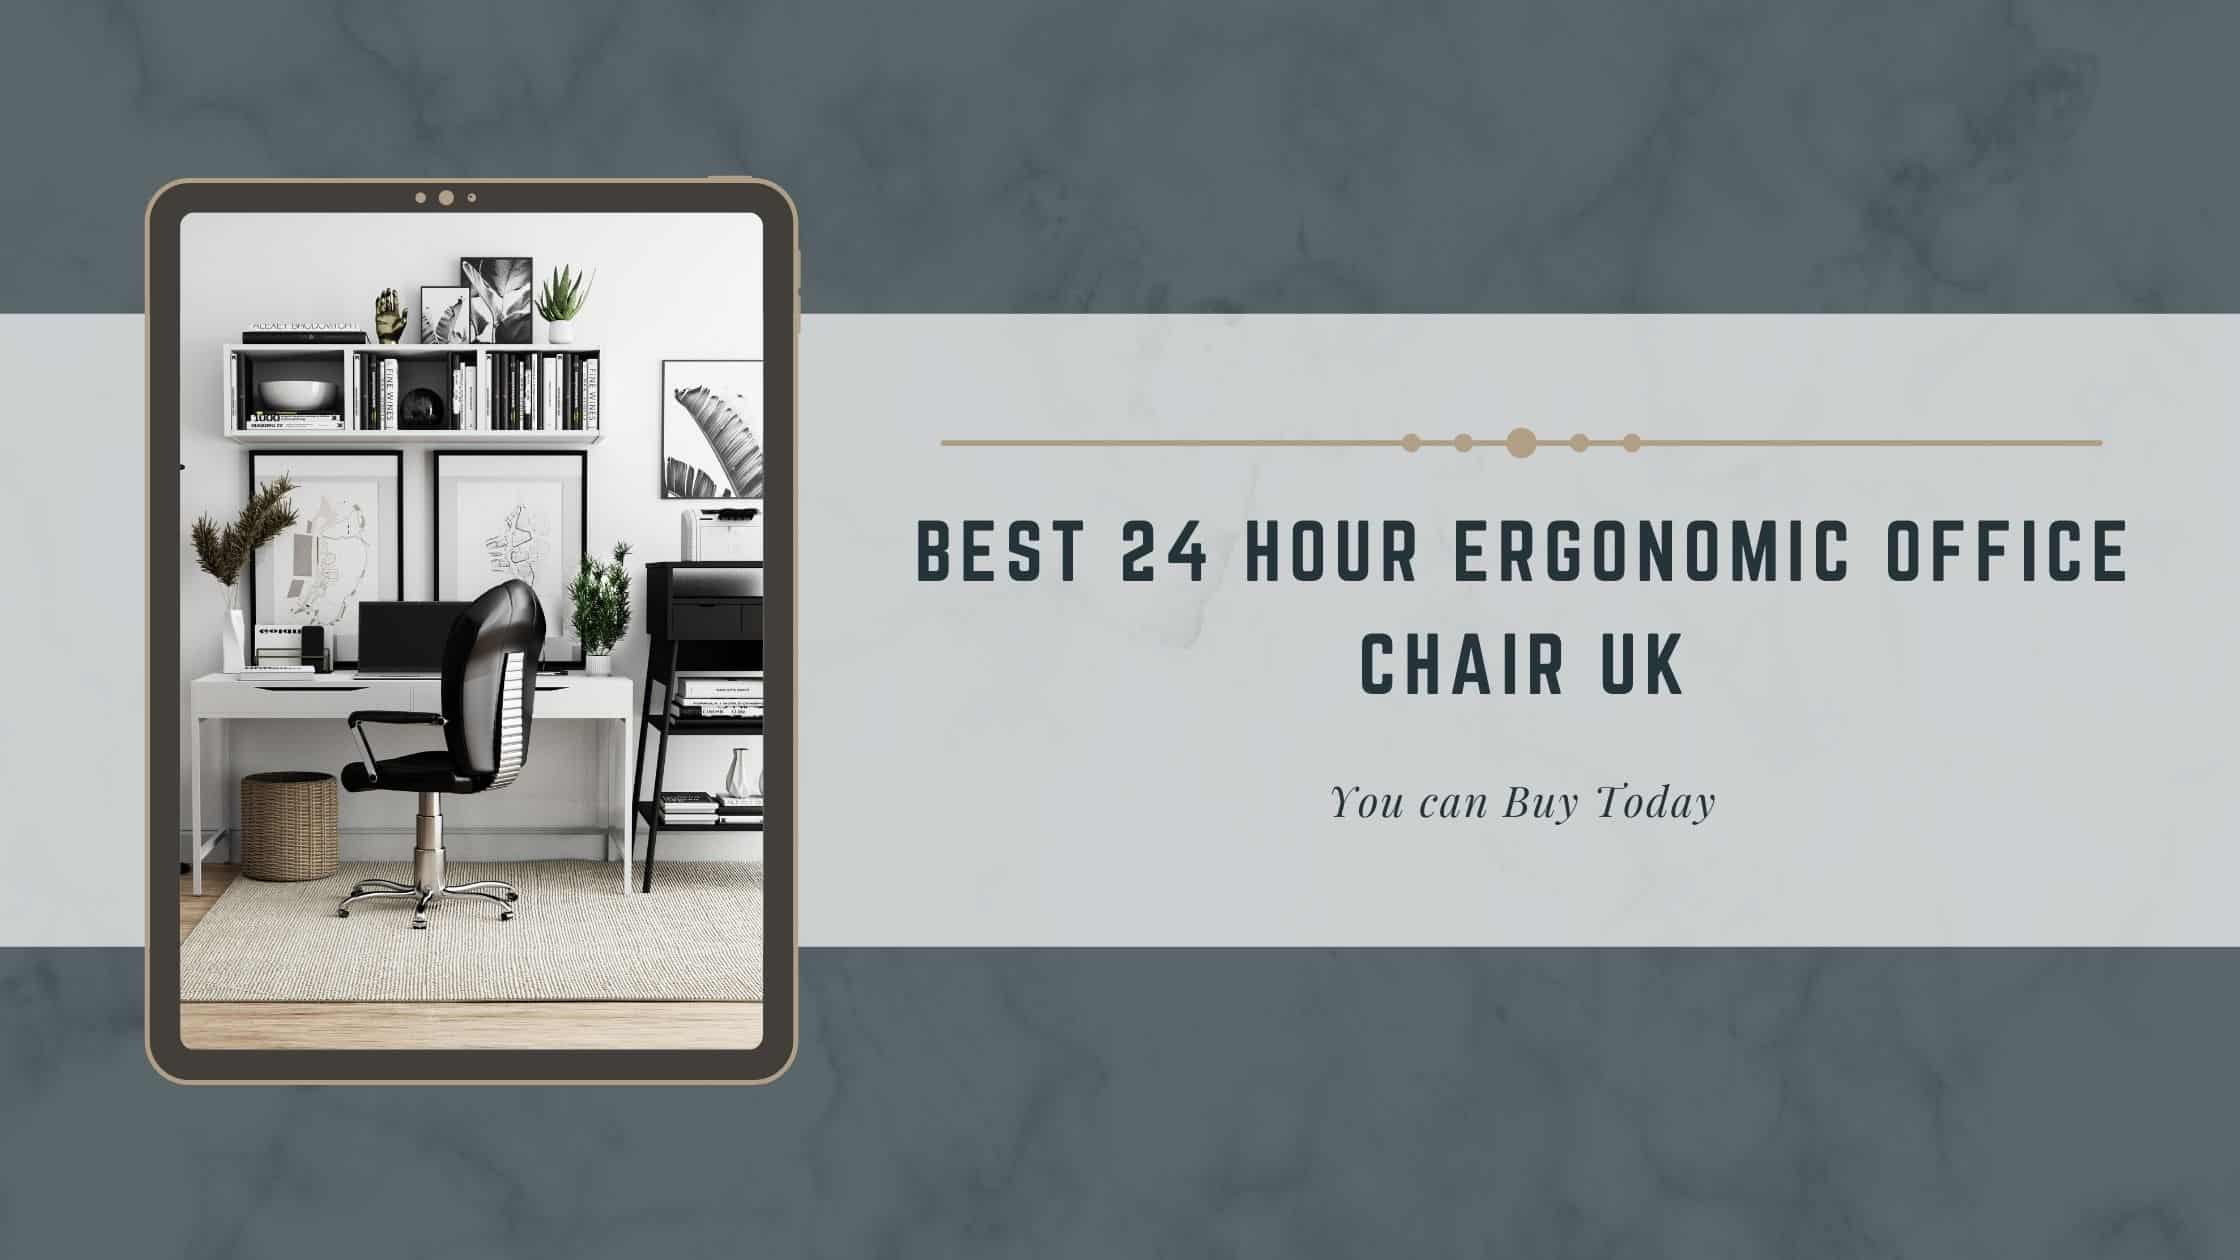 Best 24 Hour Ergonomic Office Chair UK - You Can Buy Today